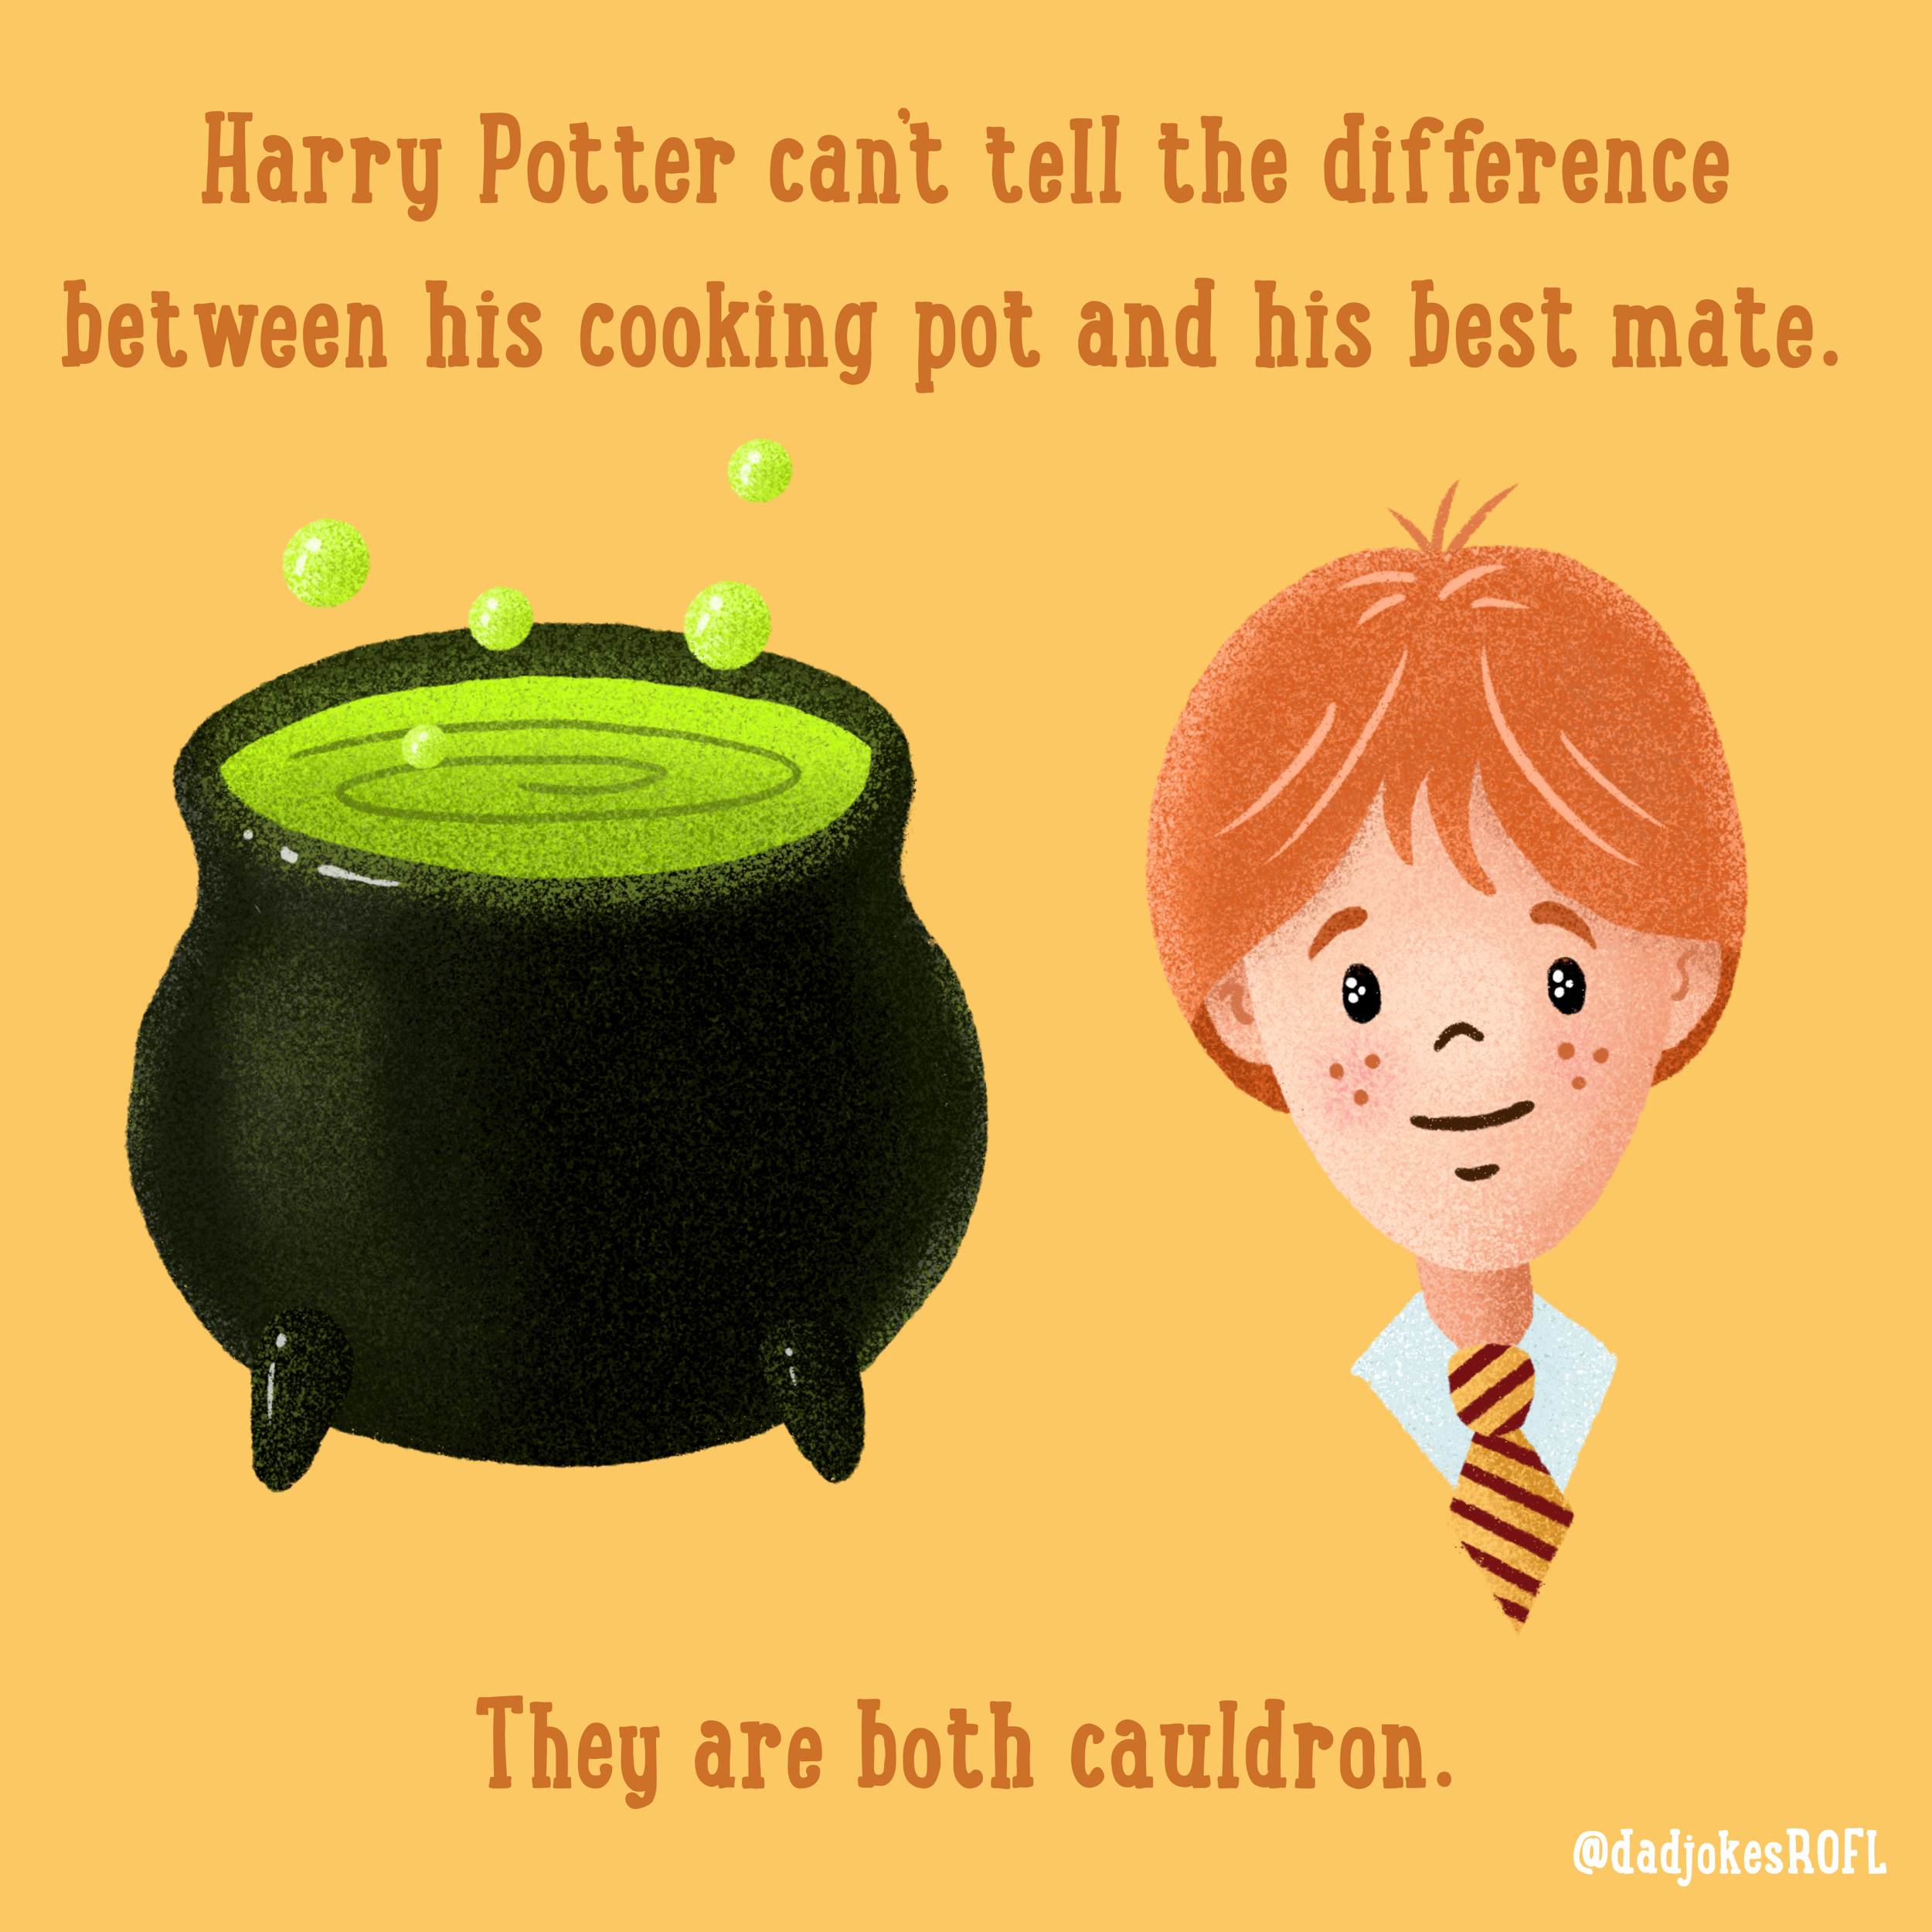 Harry Potter can't tell the difference between his cooking pot and his best mate.  They are both cauldron.